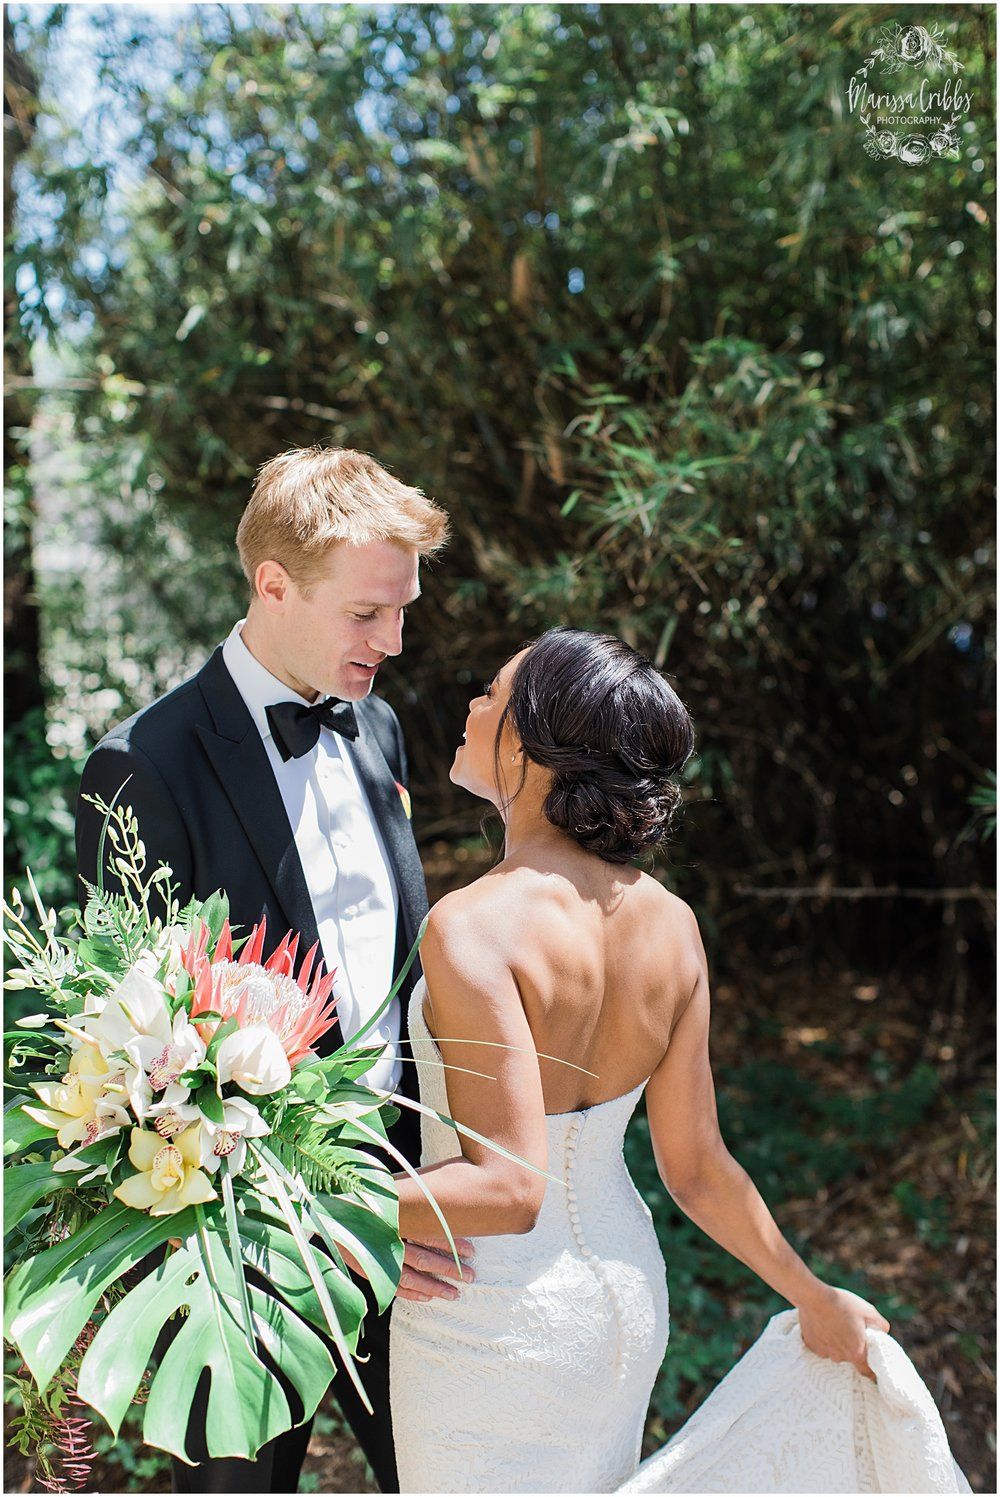 NEW ORLEANS WEDDING | BENACHI HOUSE | SARAH & MICHAEL | MARISSA CRIBBS PHOTOGRAPHY_4409.jpg